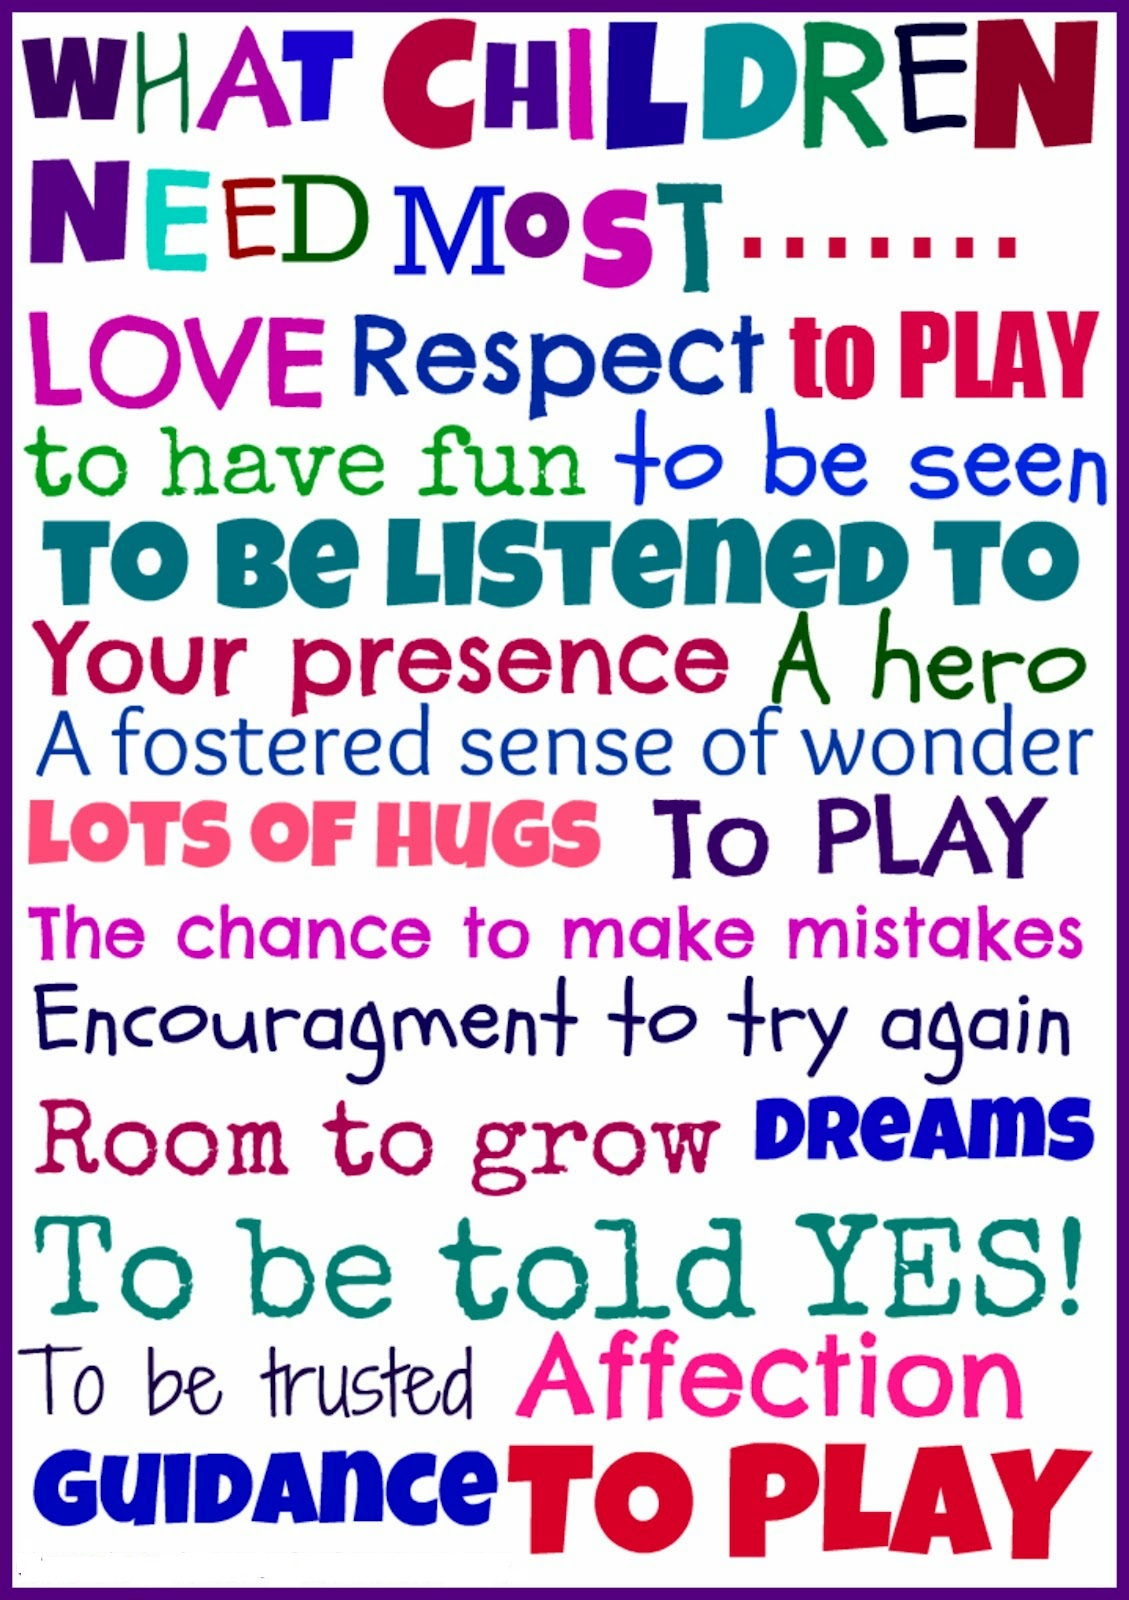 what-children-need-most-love-respect-to-play-to-have-fun-to-be-seen